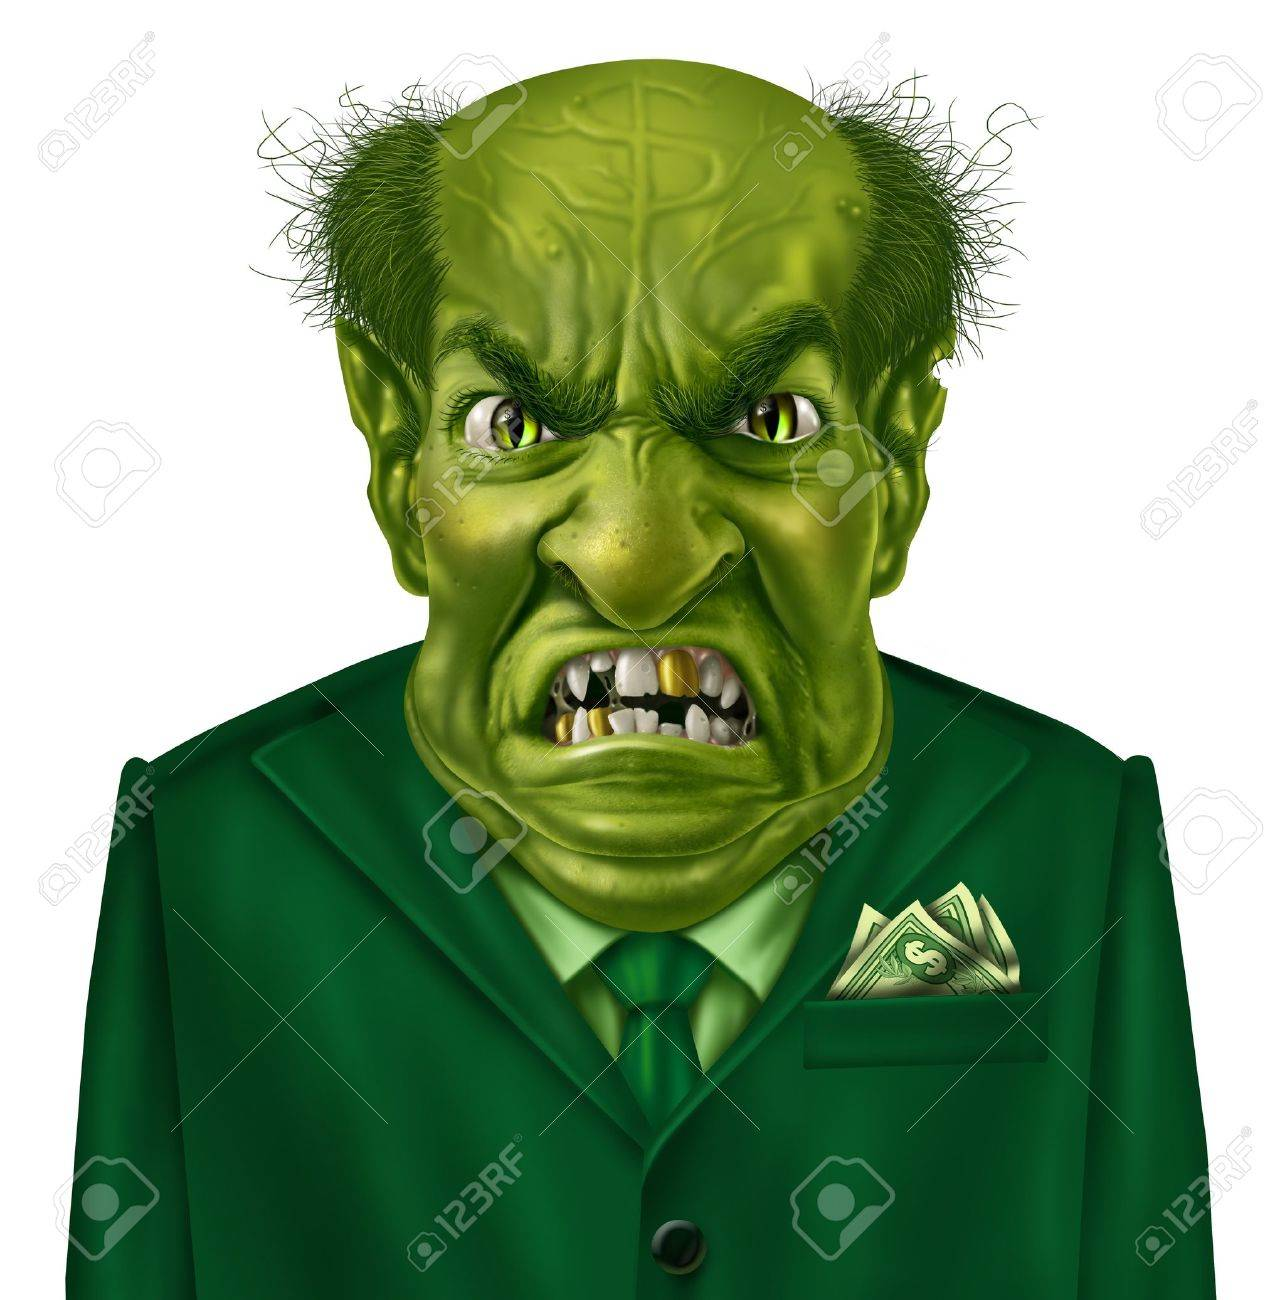 Selfish greed as a green business boss character with a suit and dollar sign on his forehead representing the concept of selfishness and greedy financial behavior Stock Photo - 17811888